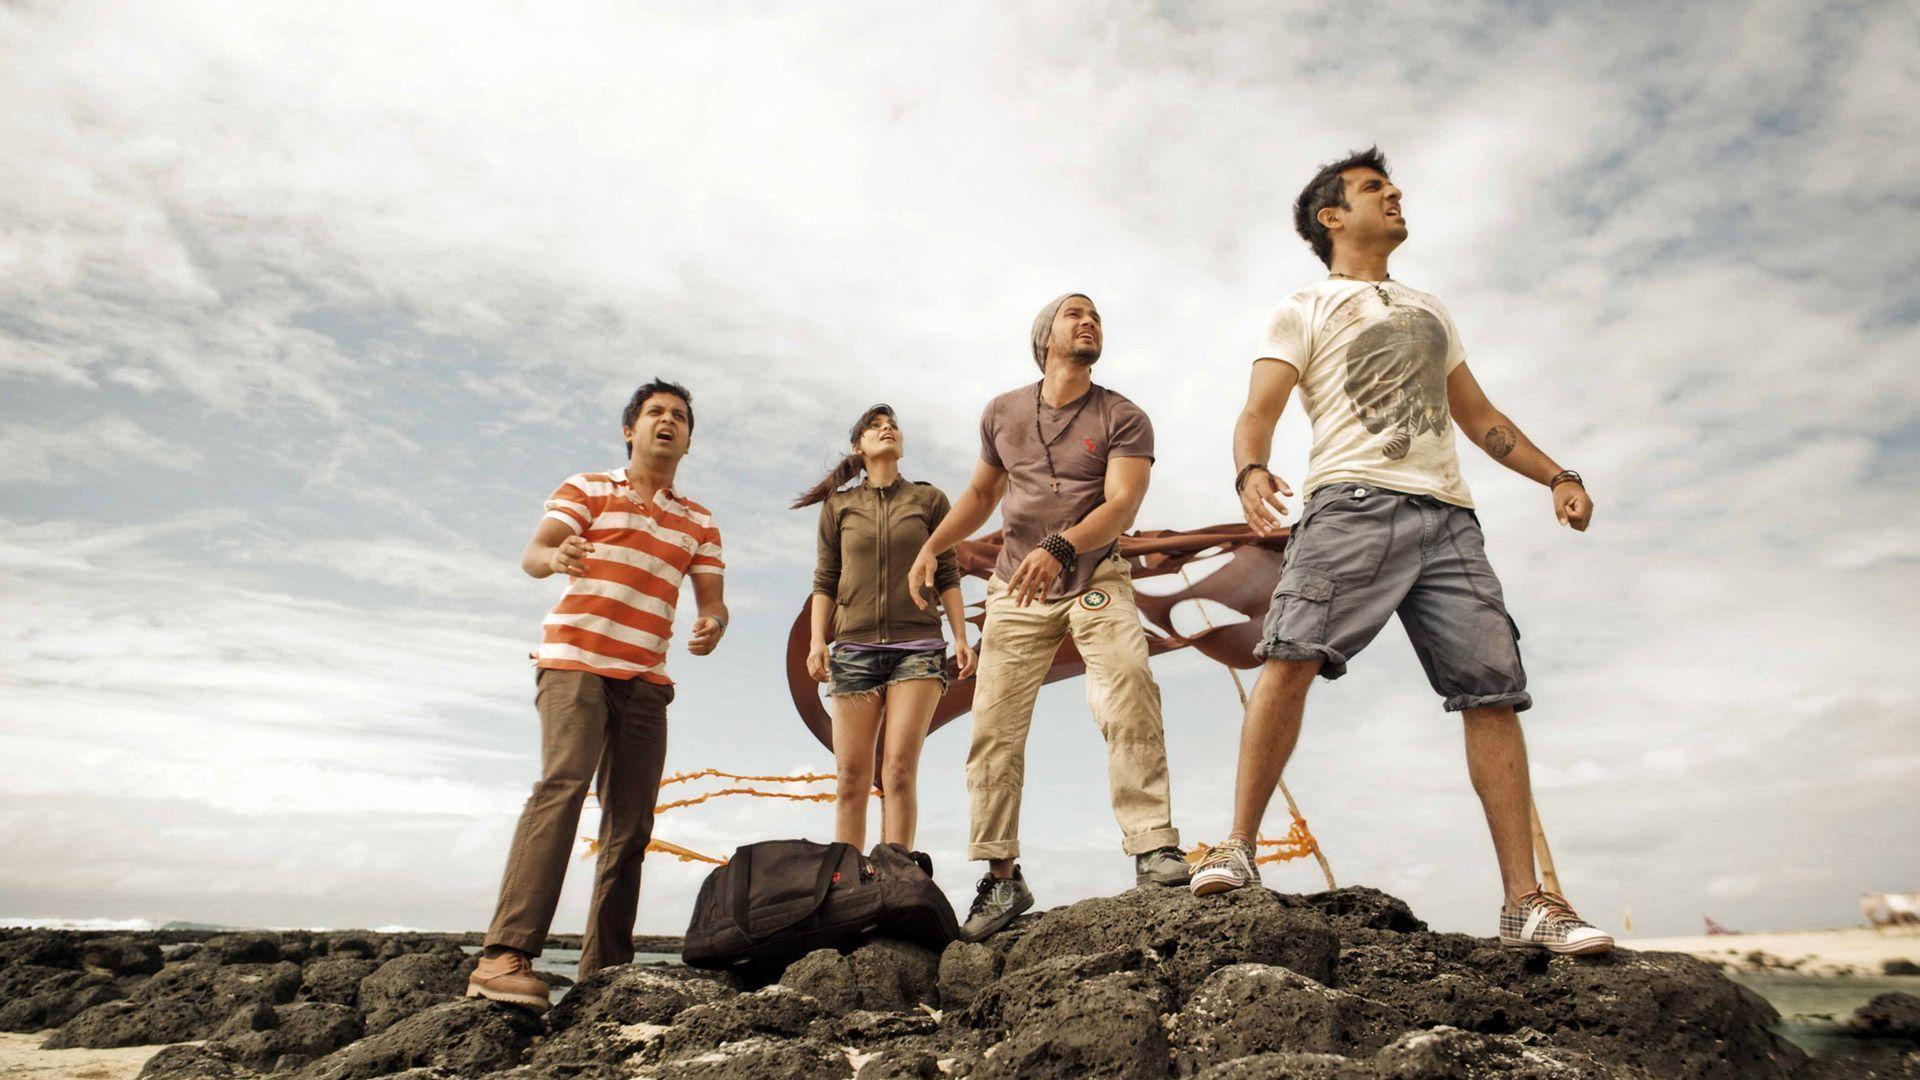 Young People Wallpapers   Wallpaper Cave